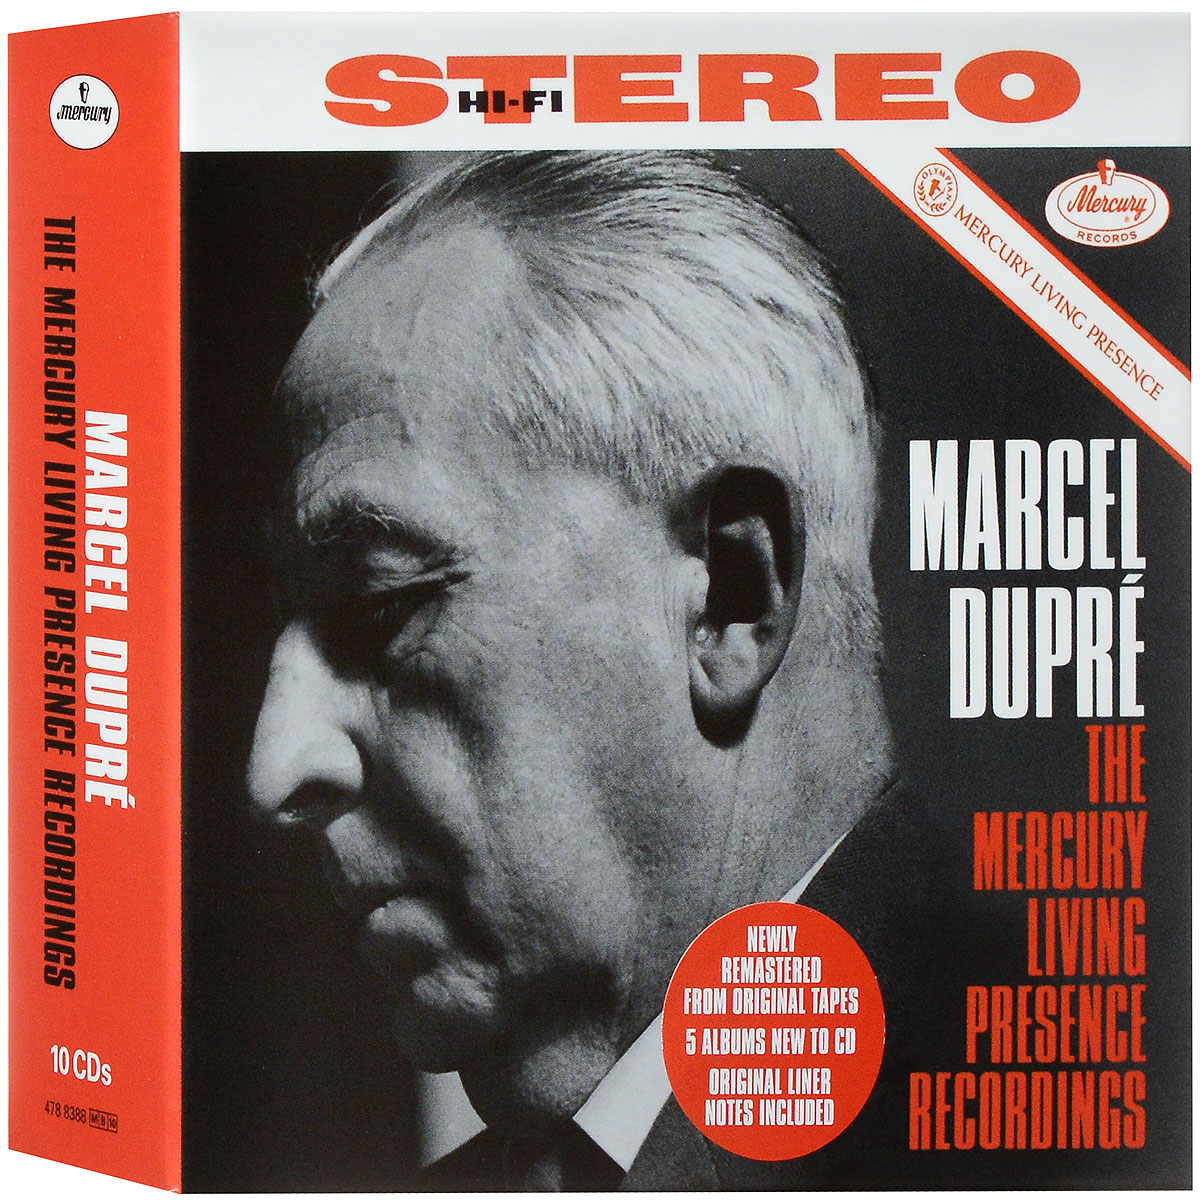 Marcel Dupre. The Mercury Living Presence Recordings (10 CD)